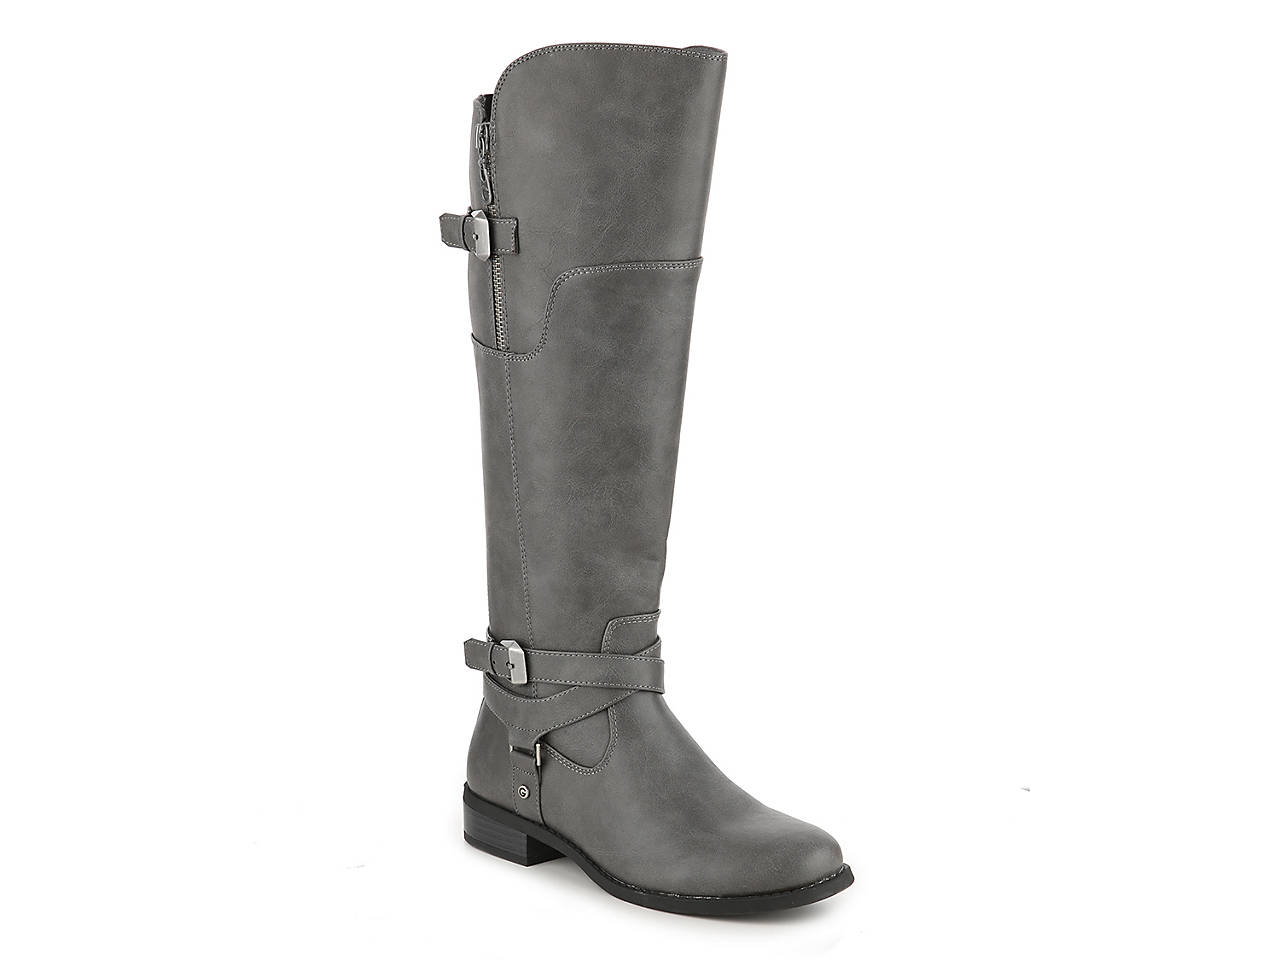 b12c6c7ca0509 G by GUESS Hilight Riding Boot Women's Shoes | DSW